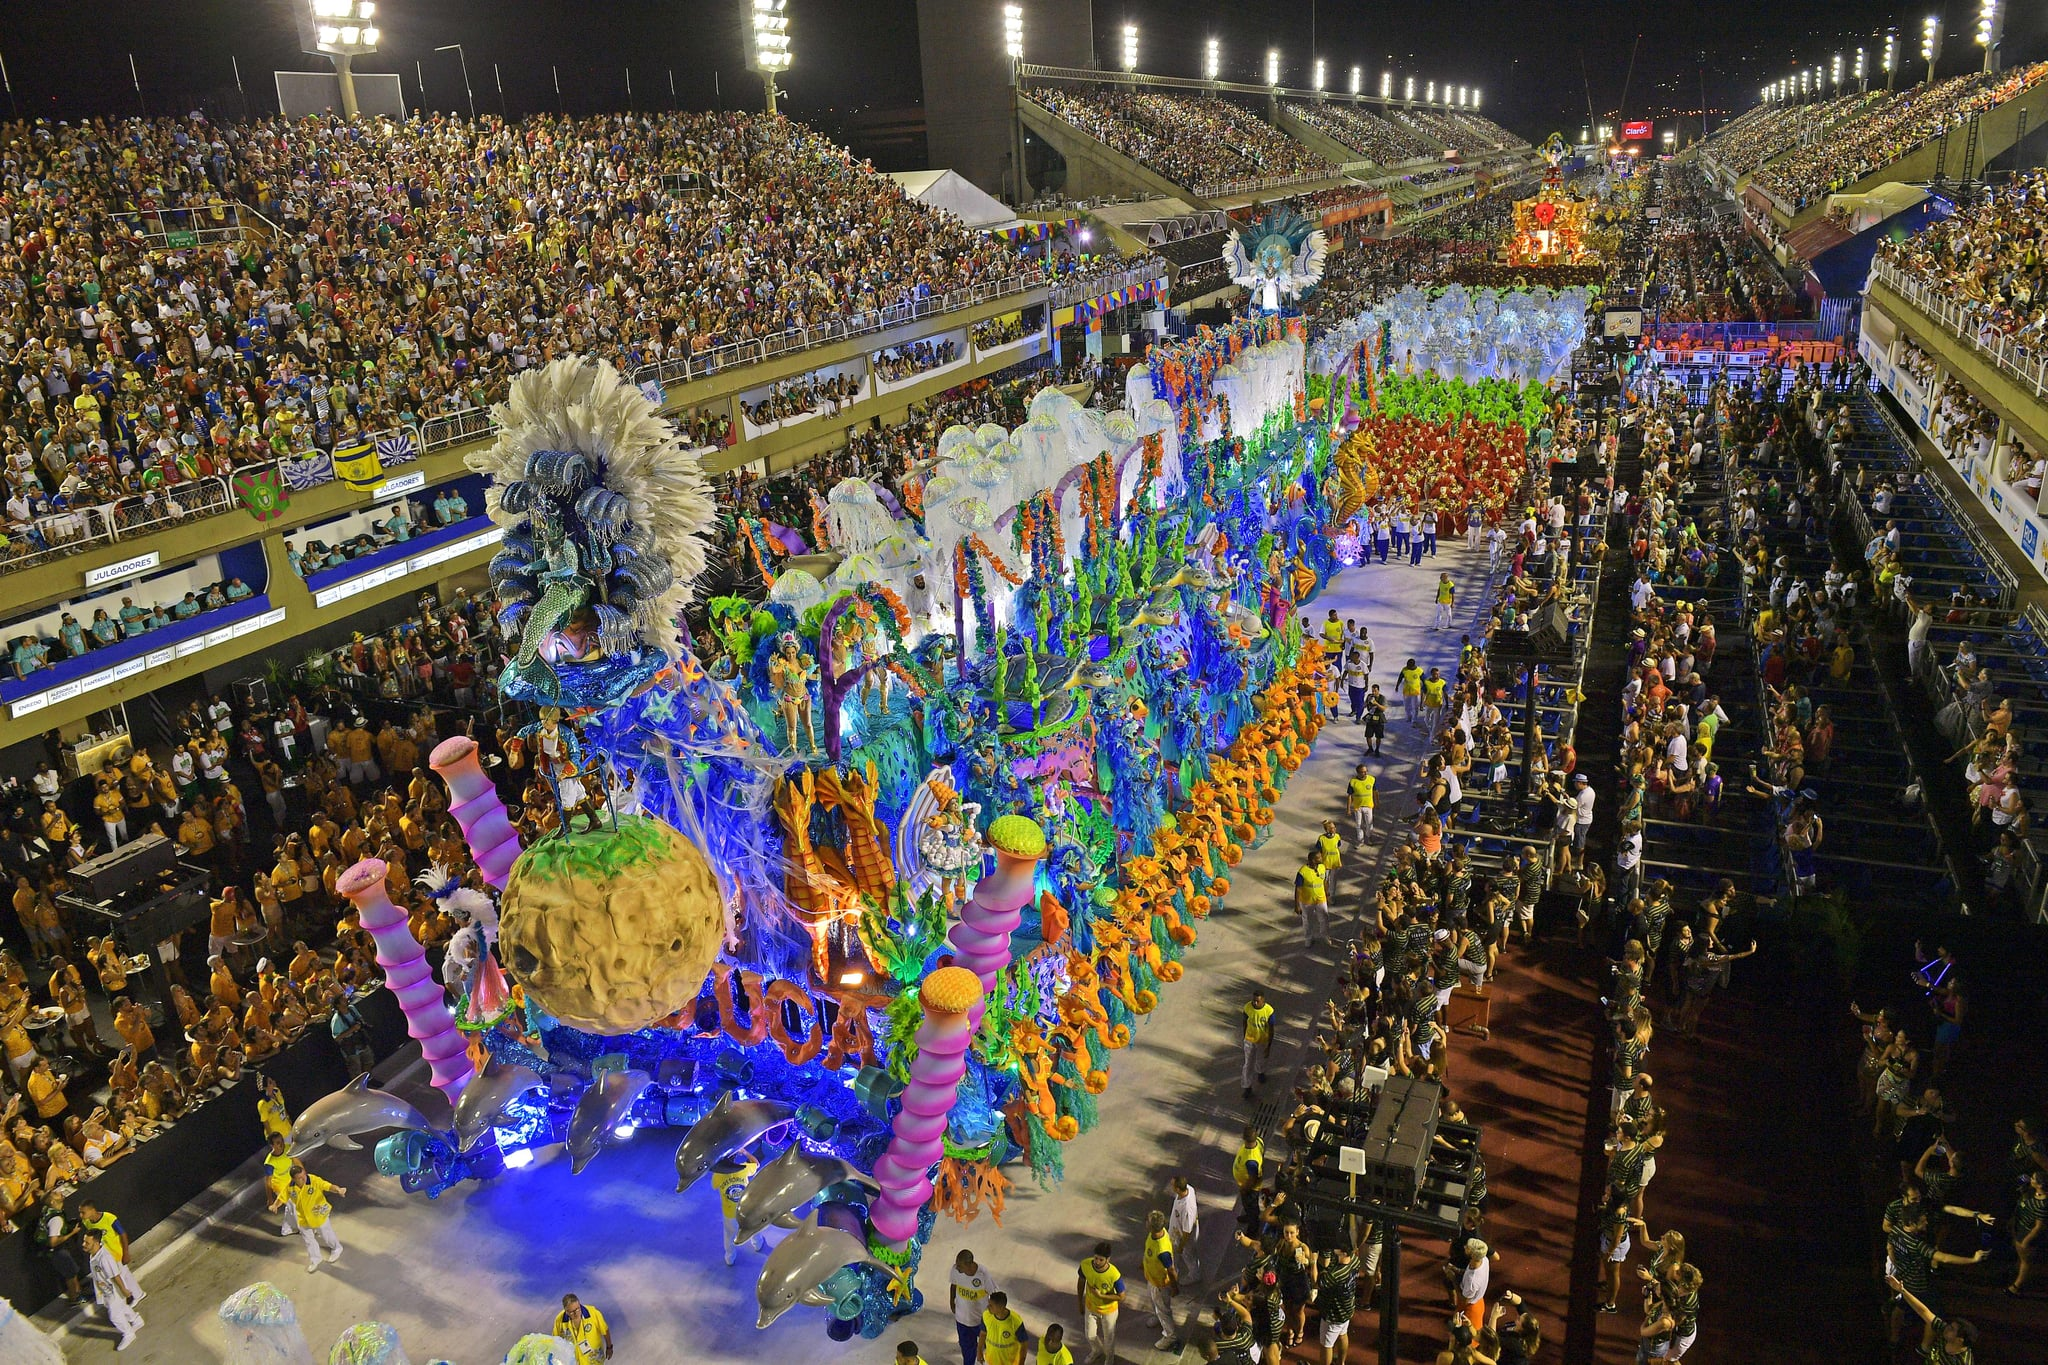 TOPSHOT - Revellers of the Unidos da Tijuca samba school perform during the second night of Rio's Carnival at the Sambadrome in Rio de Janeiro, Brazil, on February 12, 2018. / AFP PHOTO / Carl DE SOUZA        (Photo credit should read CARL DE SOUZA/AFP via Getty Images)